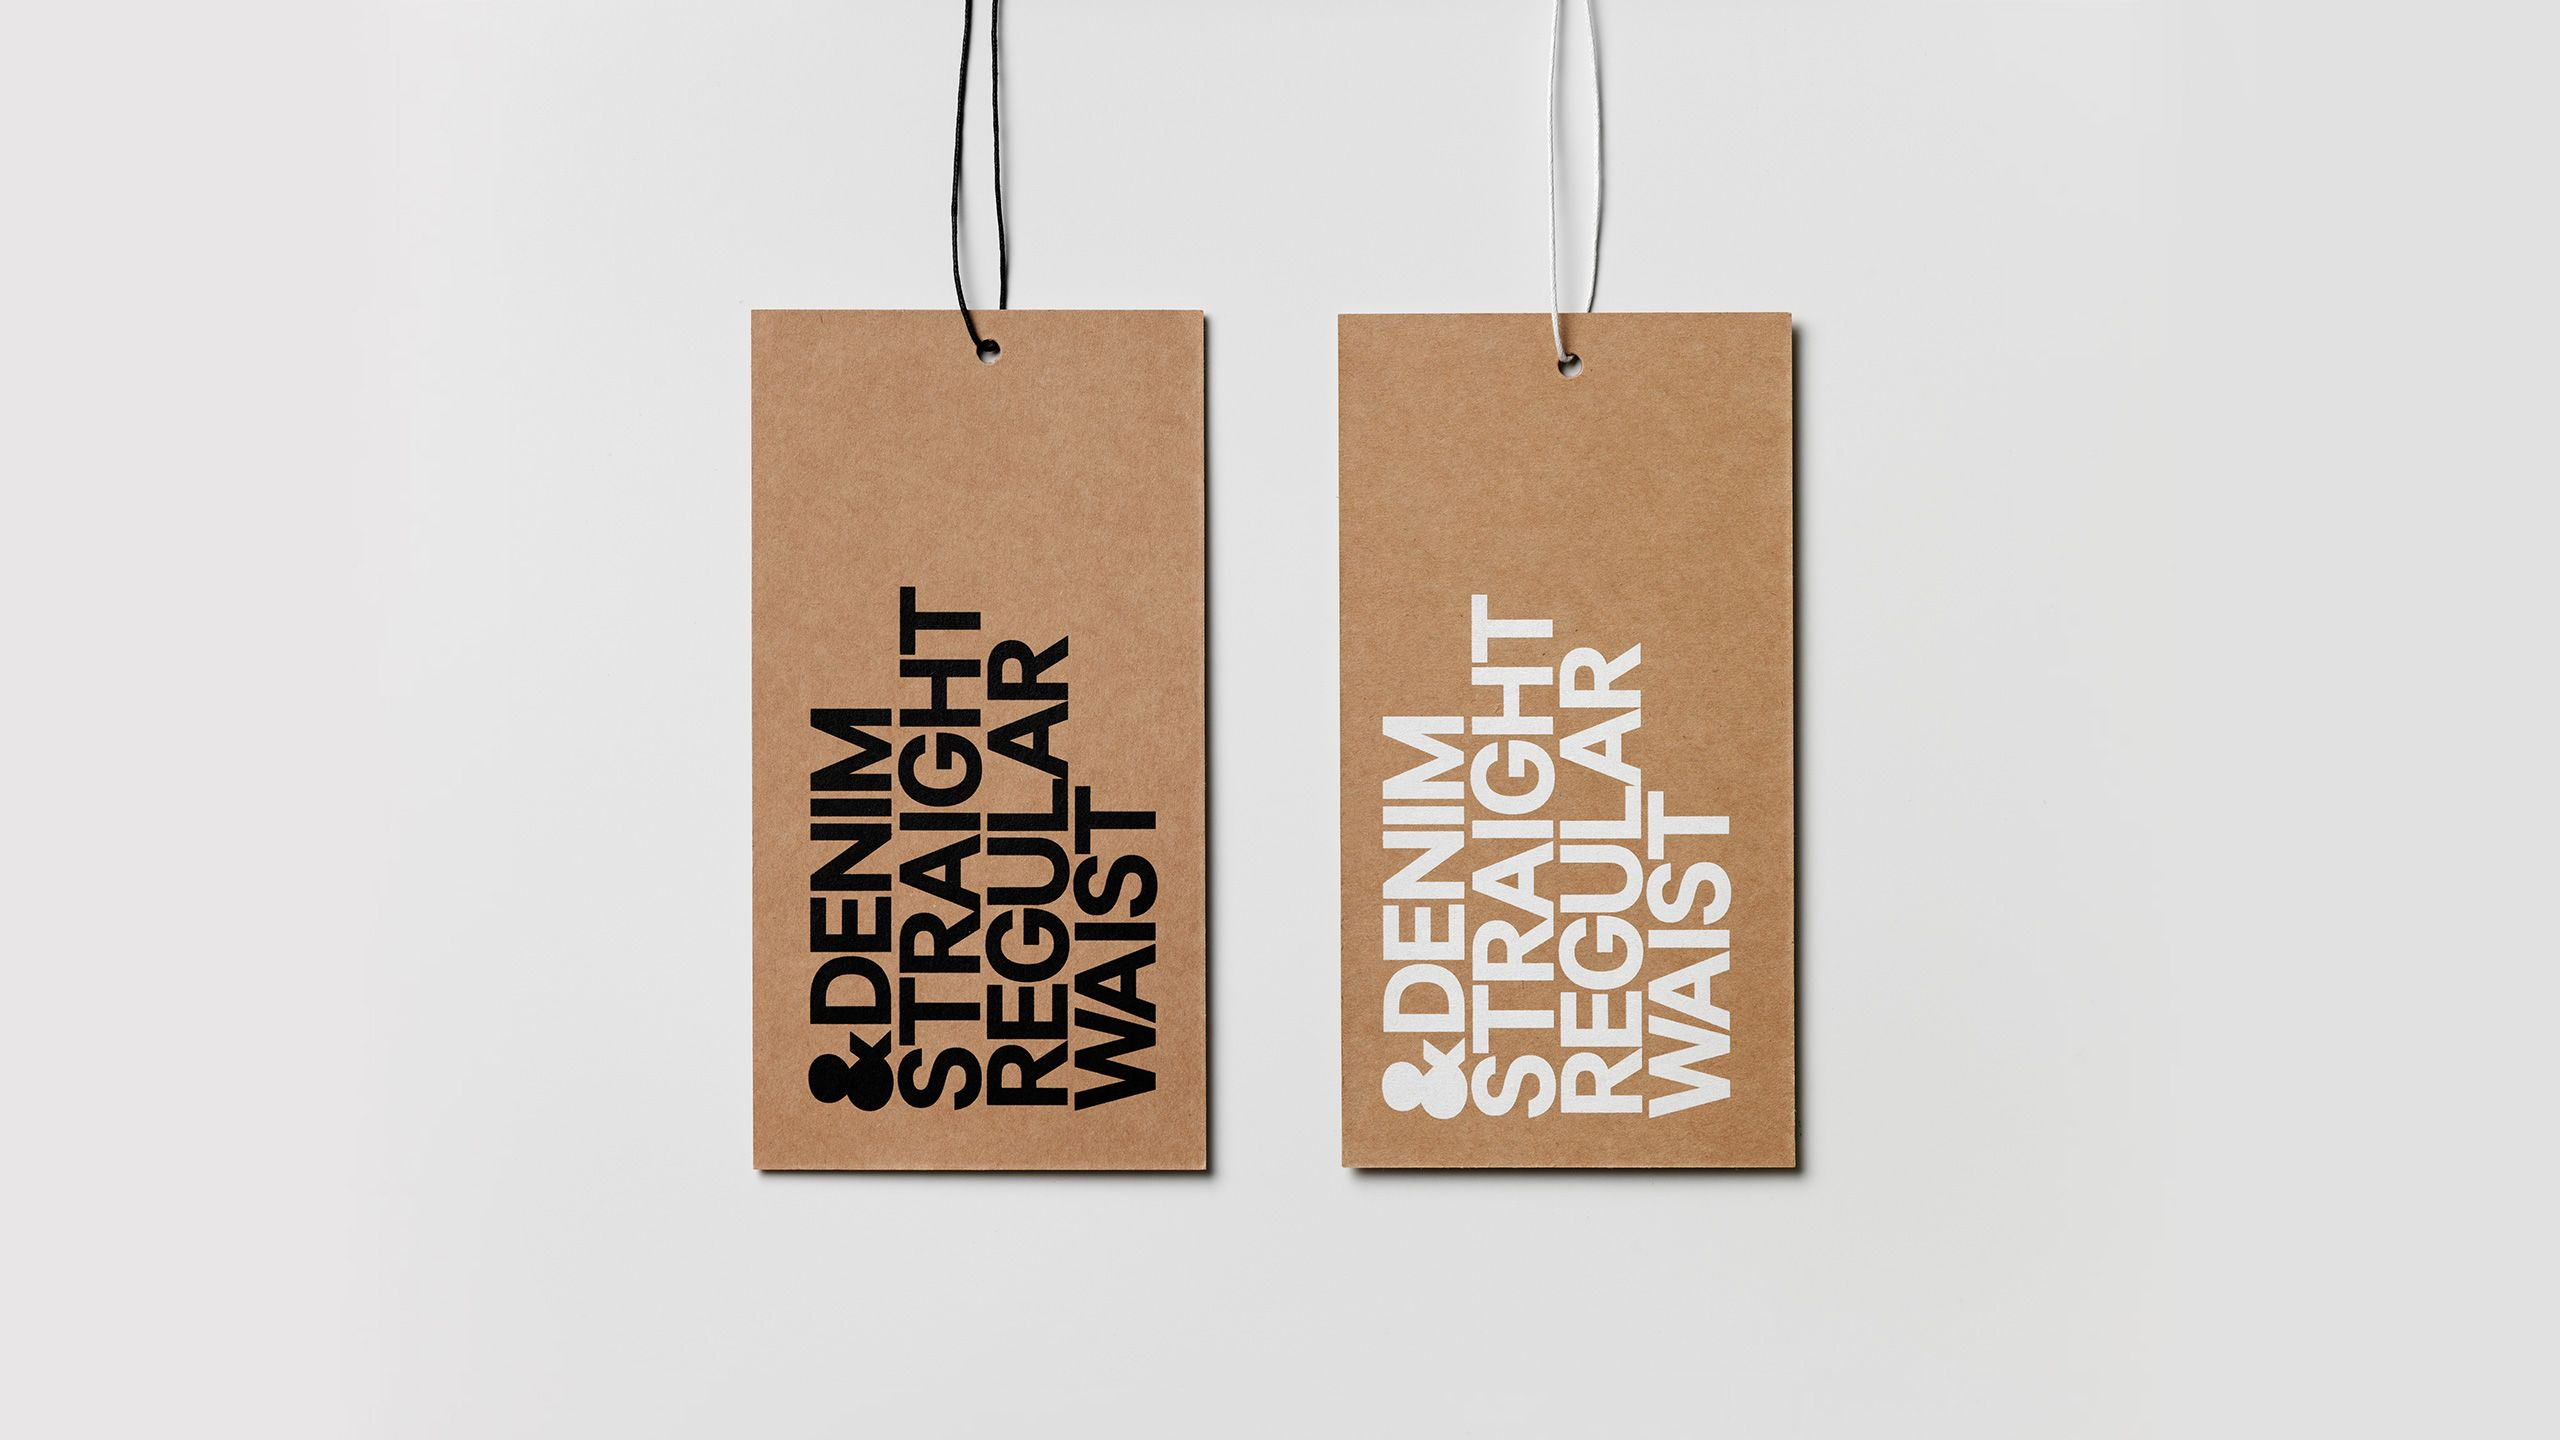 H&M &Denim tags designed by The Studio.